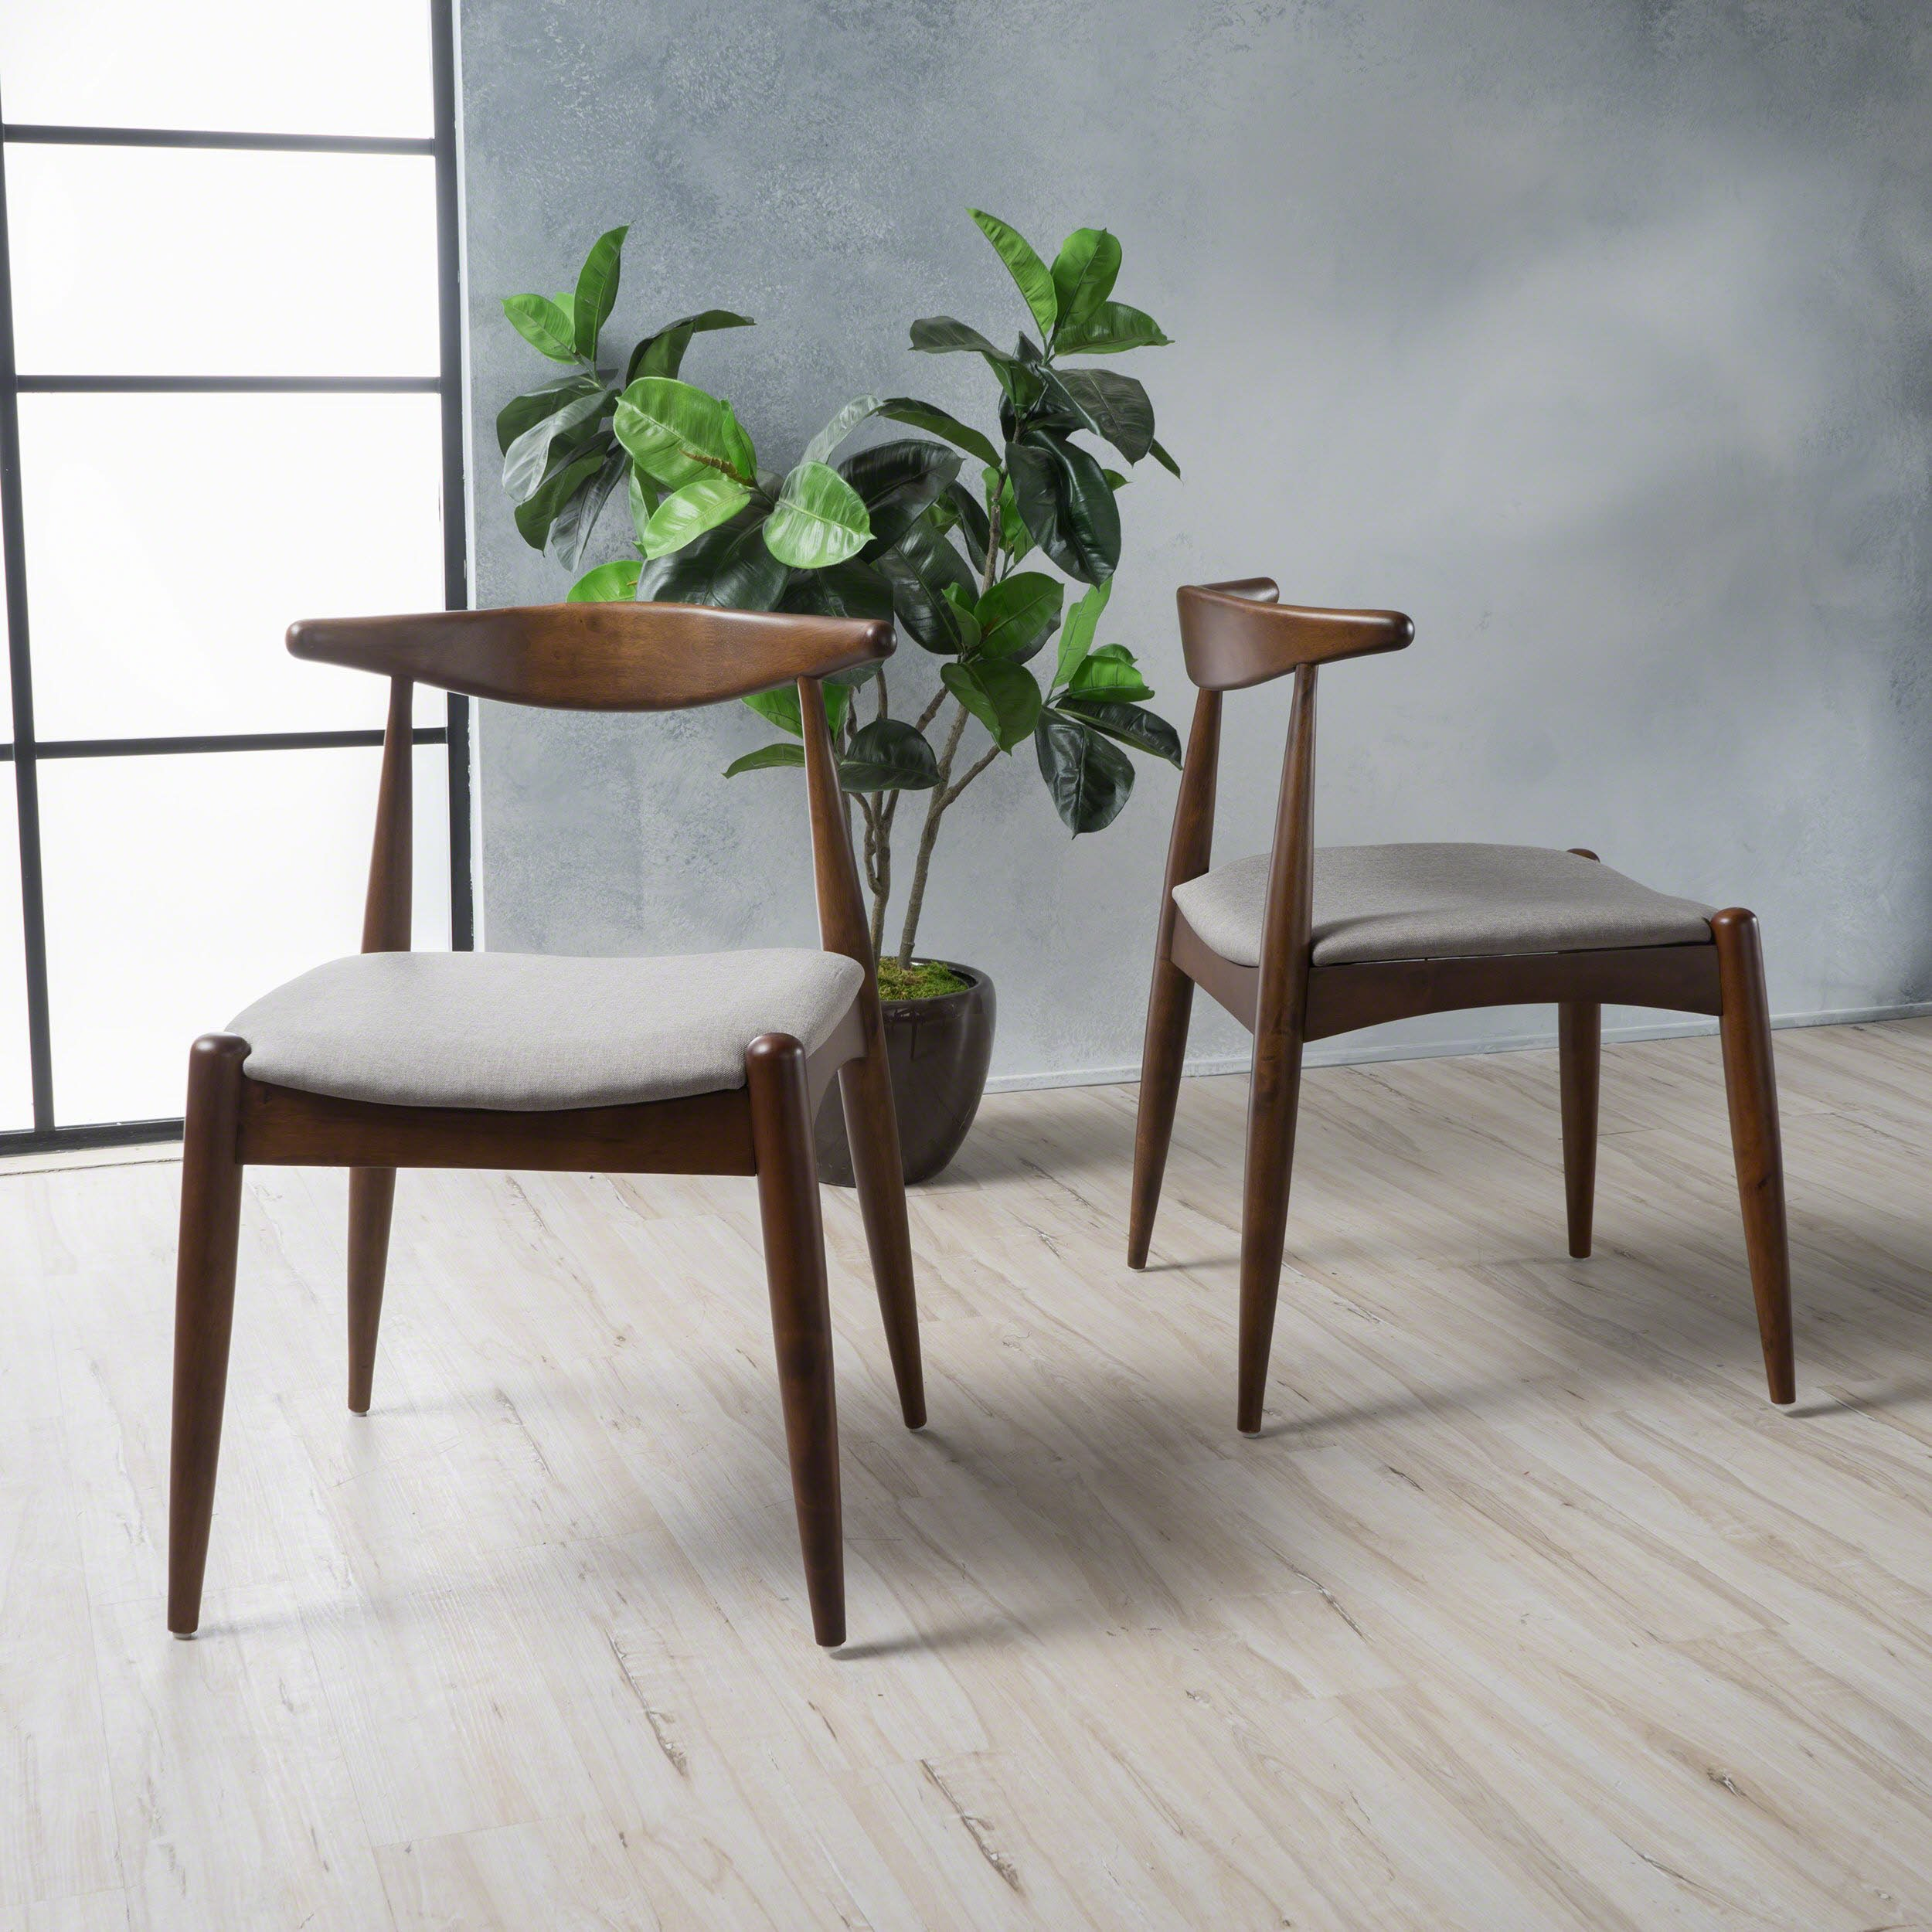 Christopher Knight Home 300007 Francie Dark Beige Fabric with Walnut Finish Dining Chairs (Set of 2) by Christopher Knight Home